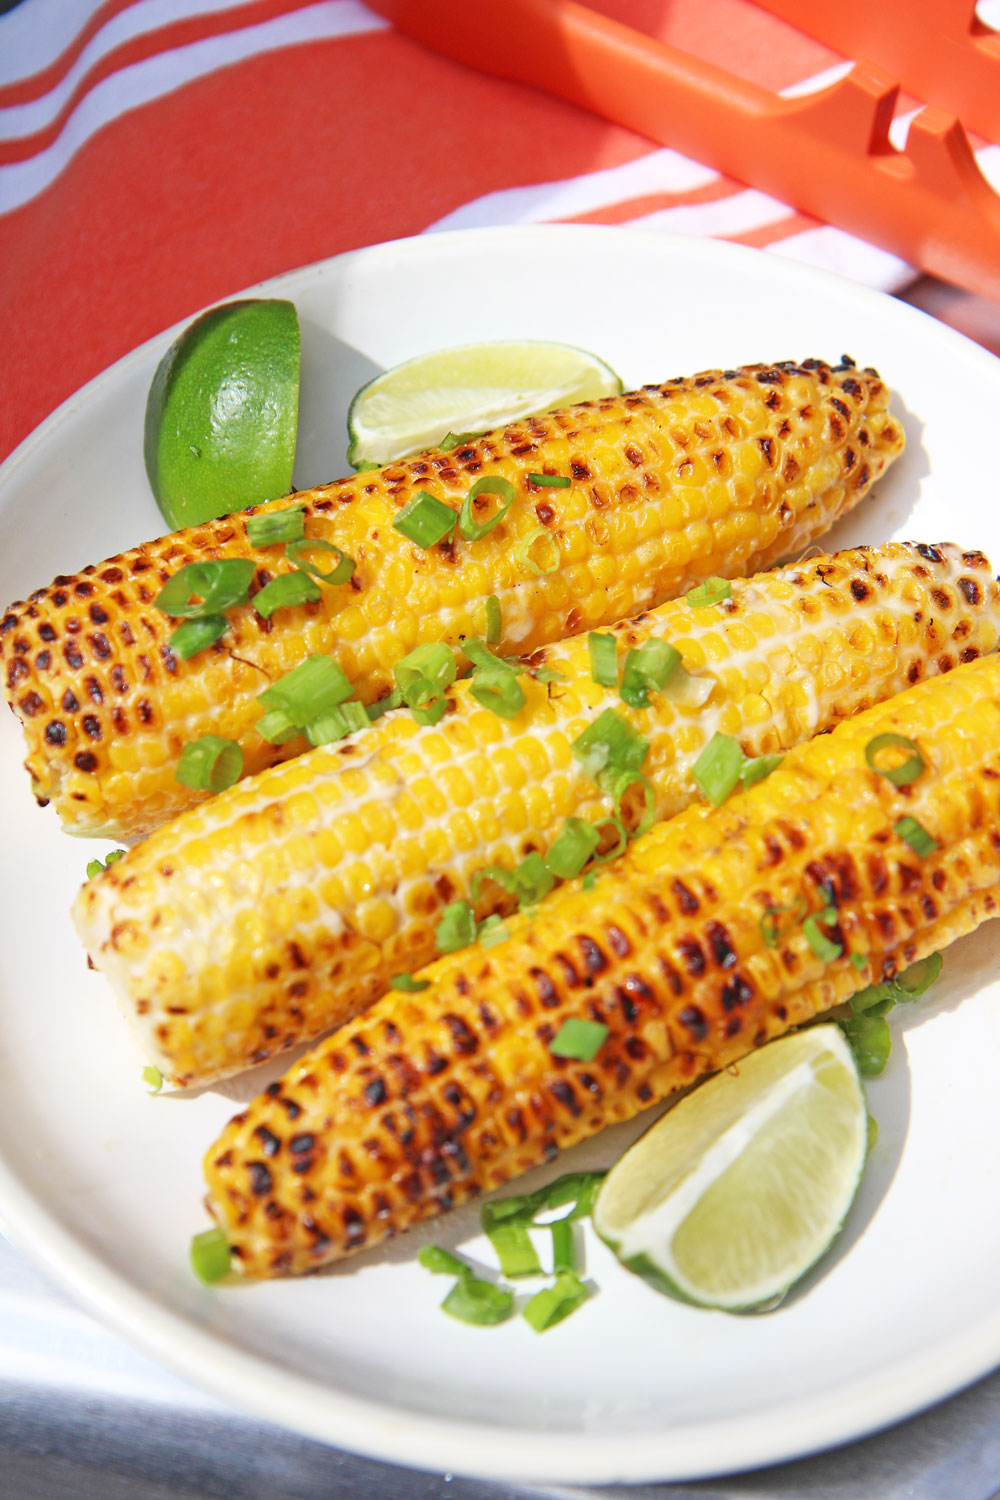 Grilled Cambodian Street Corn Recipe. This is super easy 15 minute grilling side. You make a simple sauce from coconut milk, fish sauce, scallions and sugar. Then you grill and dip till chared on the outside and sweet and juicy on the inside. Happy corn making! www.ChopHappy.com #cornrecipe #grilledcorn